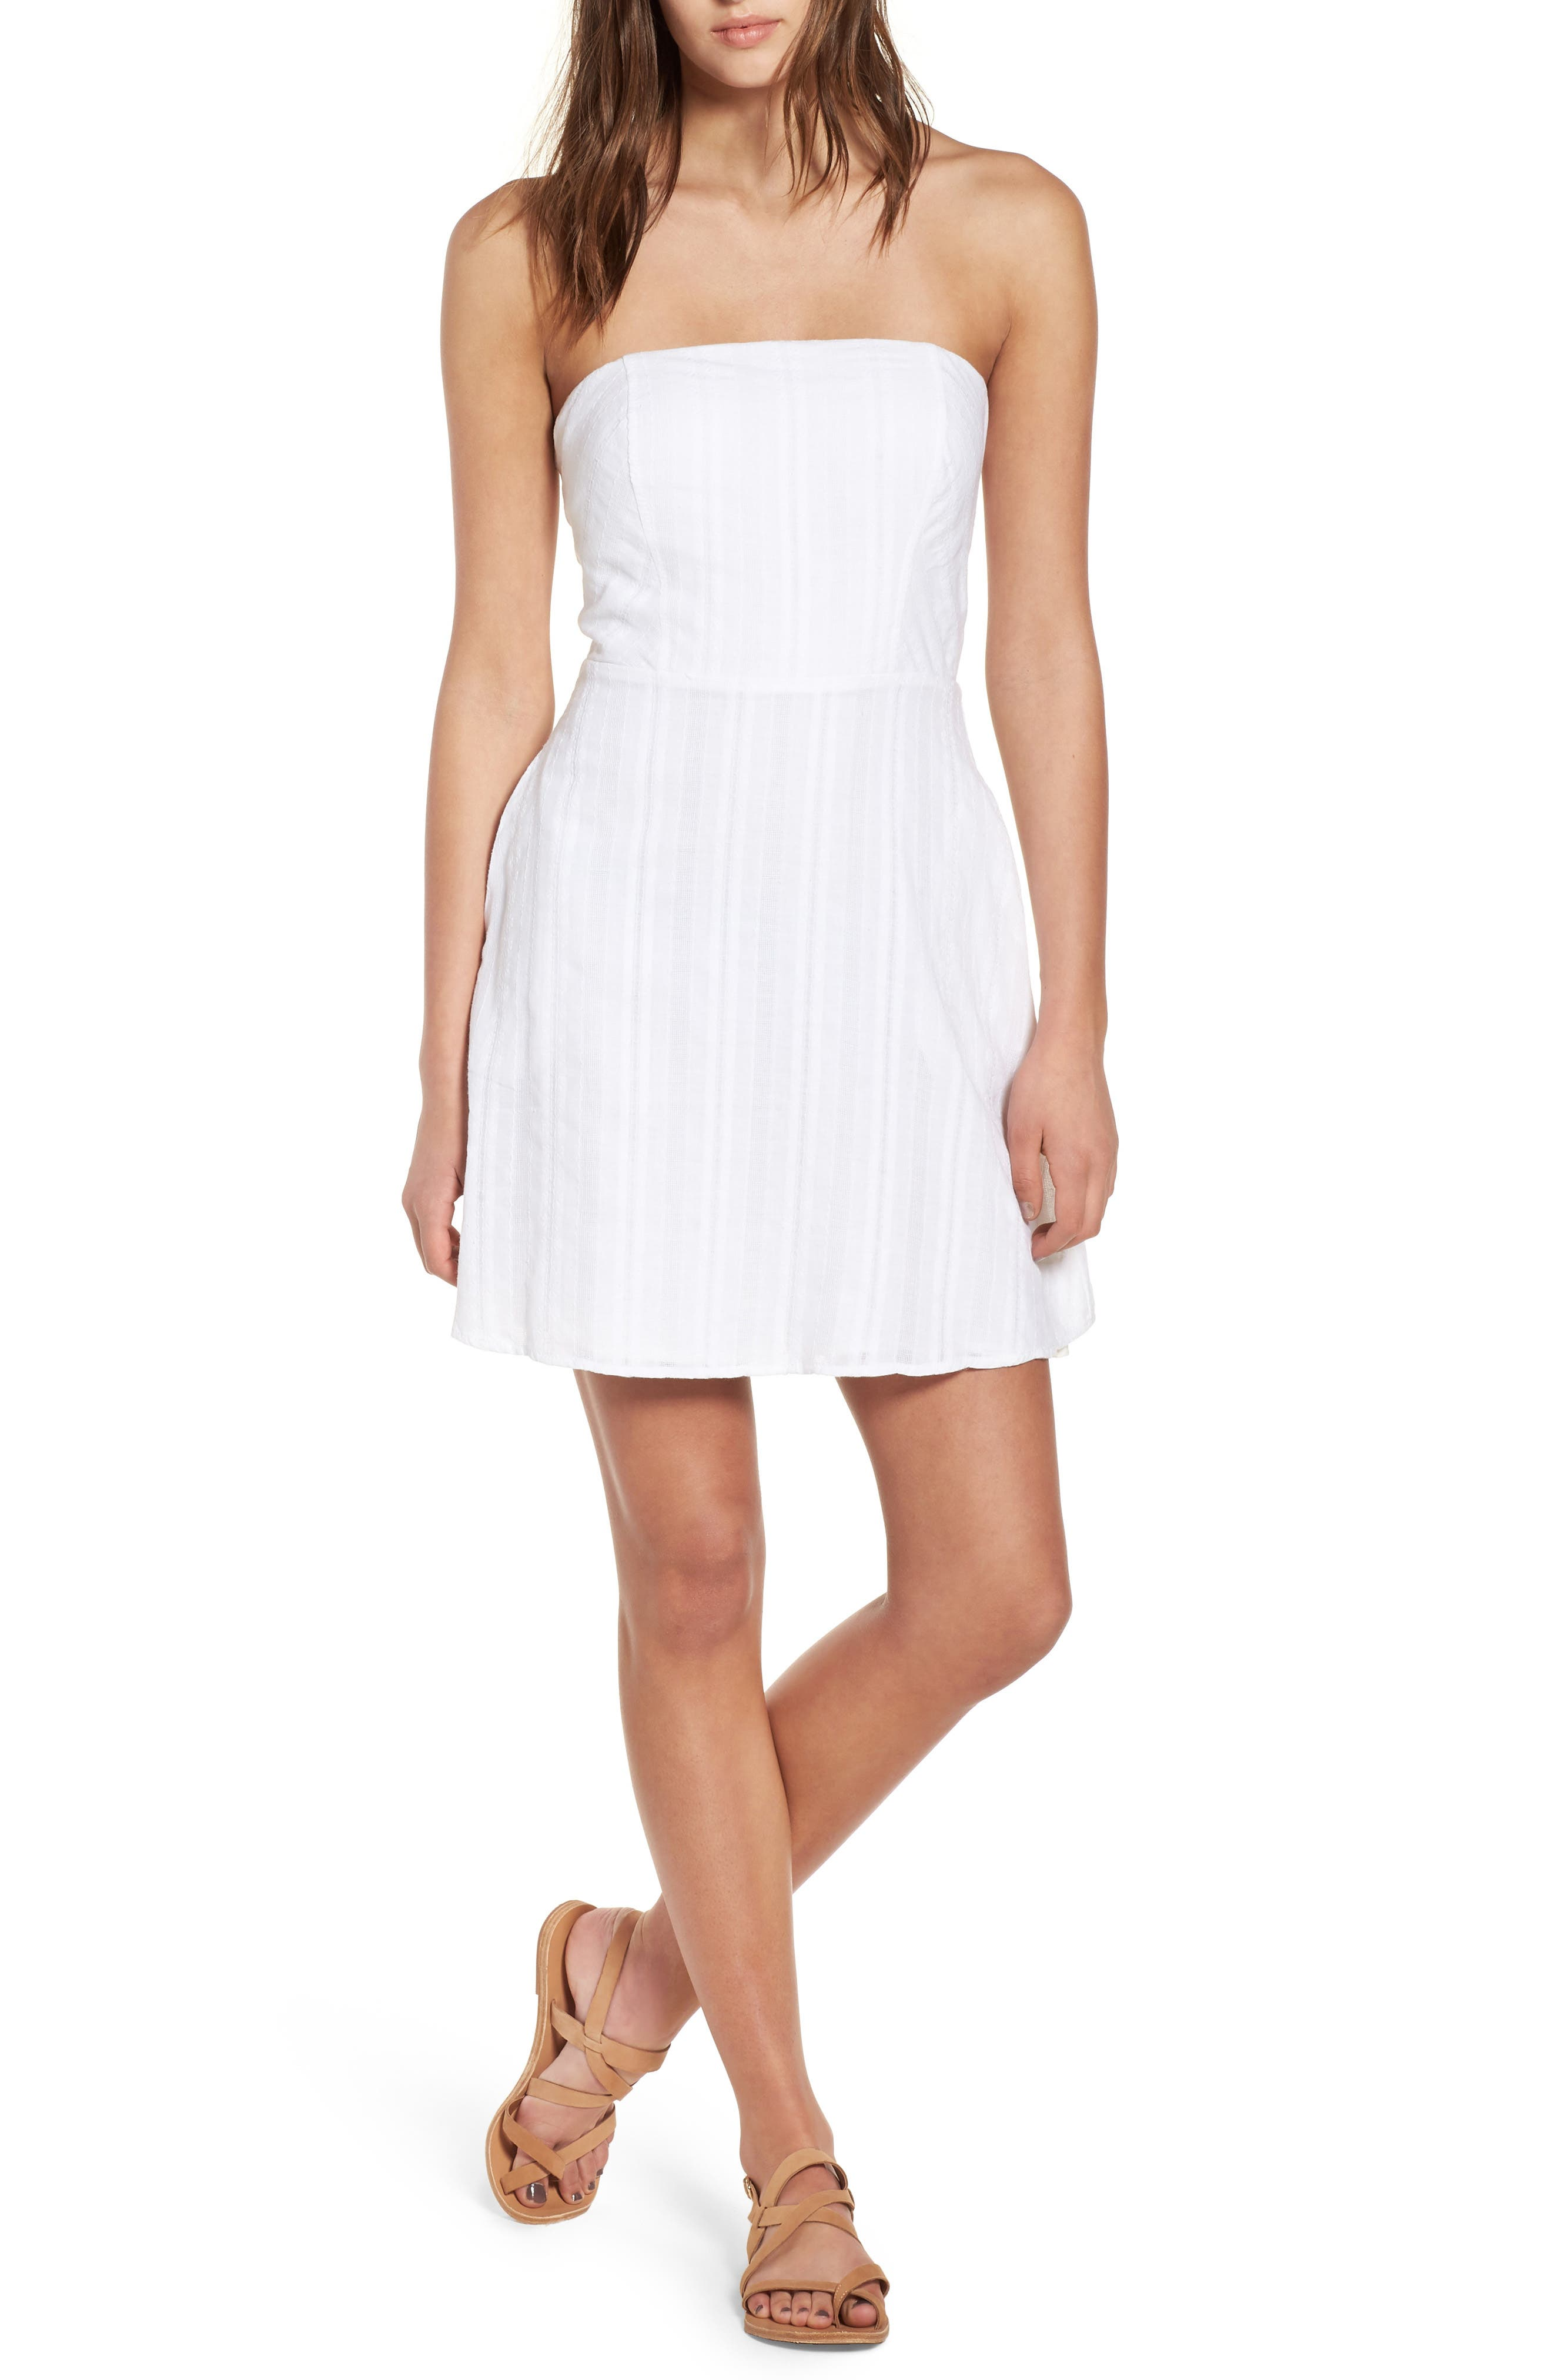 Strapless Tie Back Dress,                         Main,                         color, White